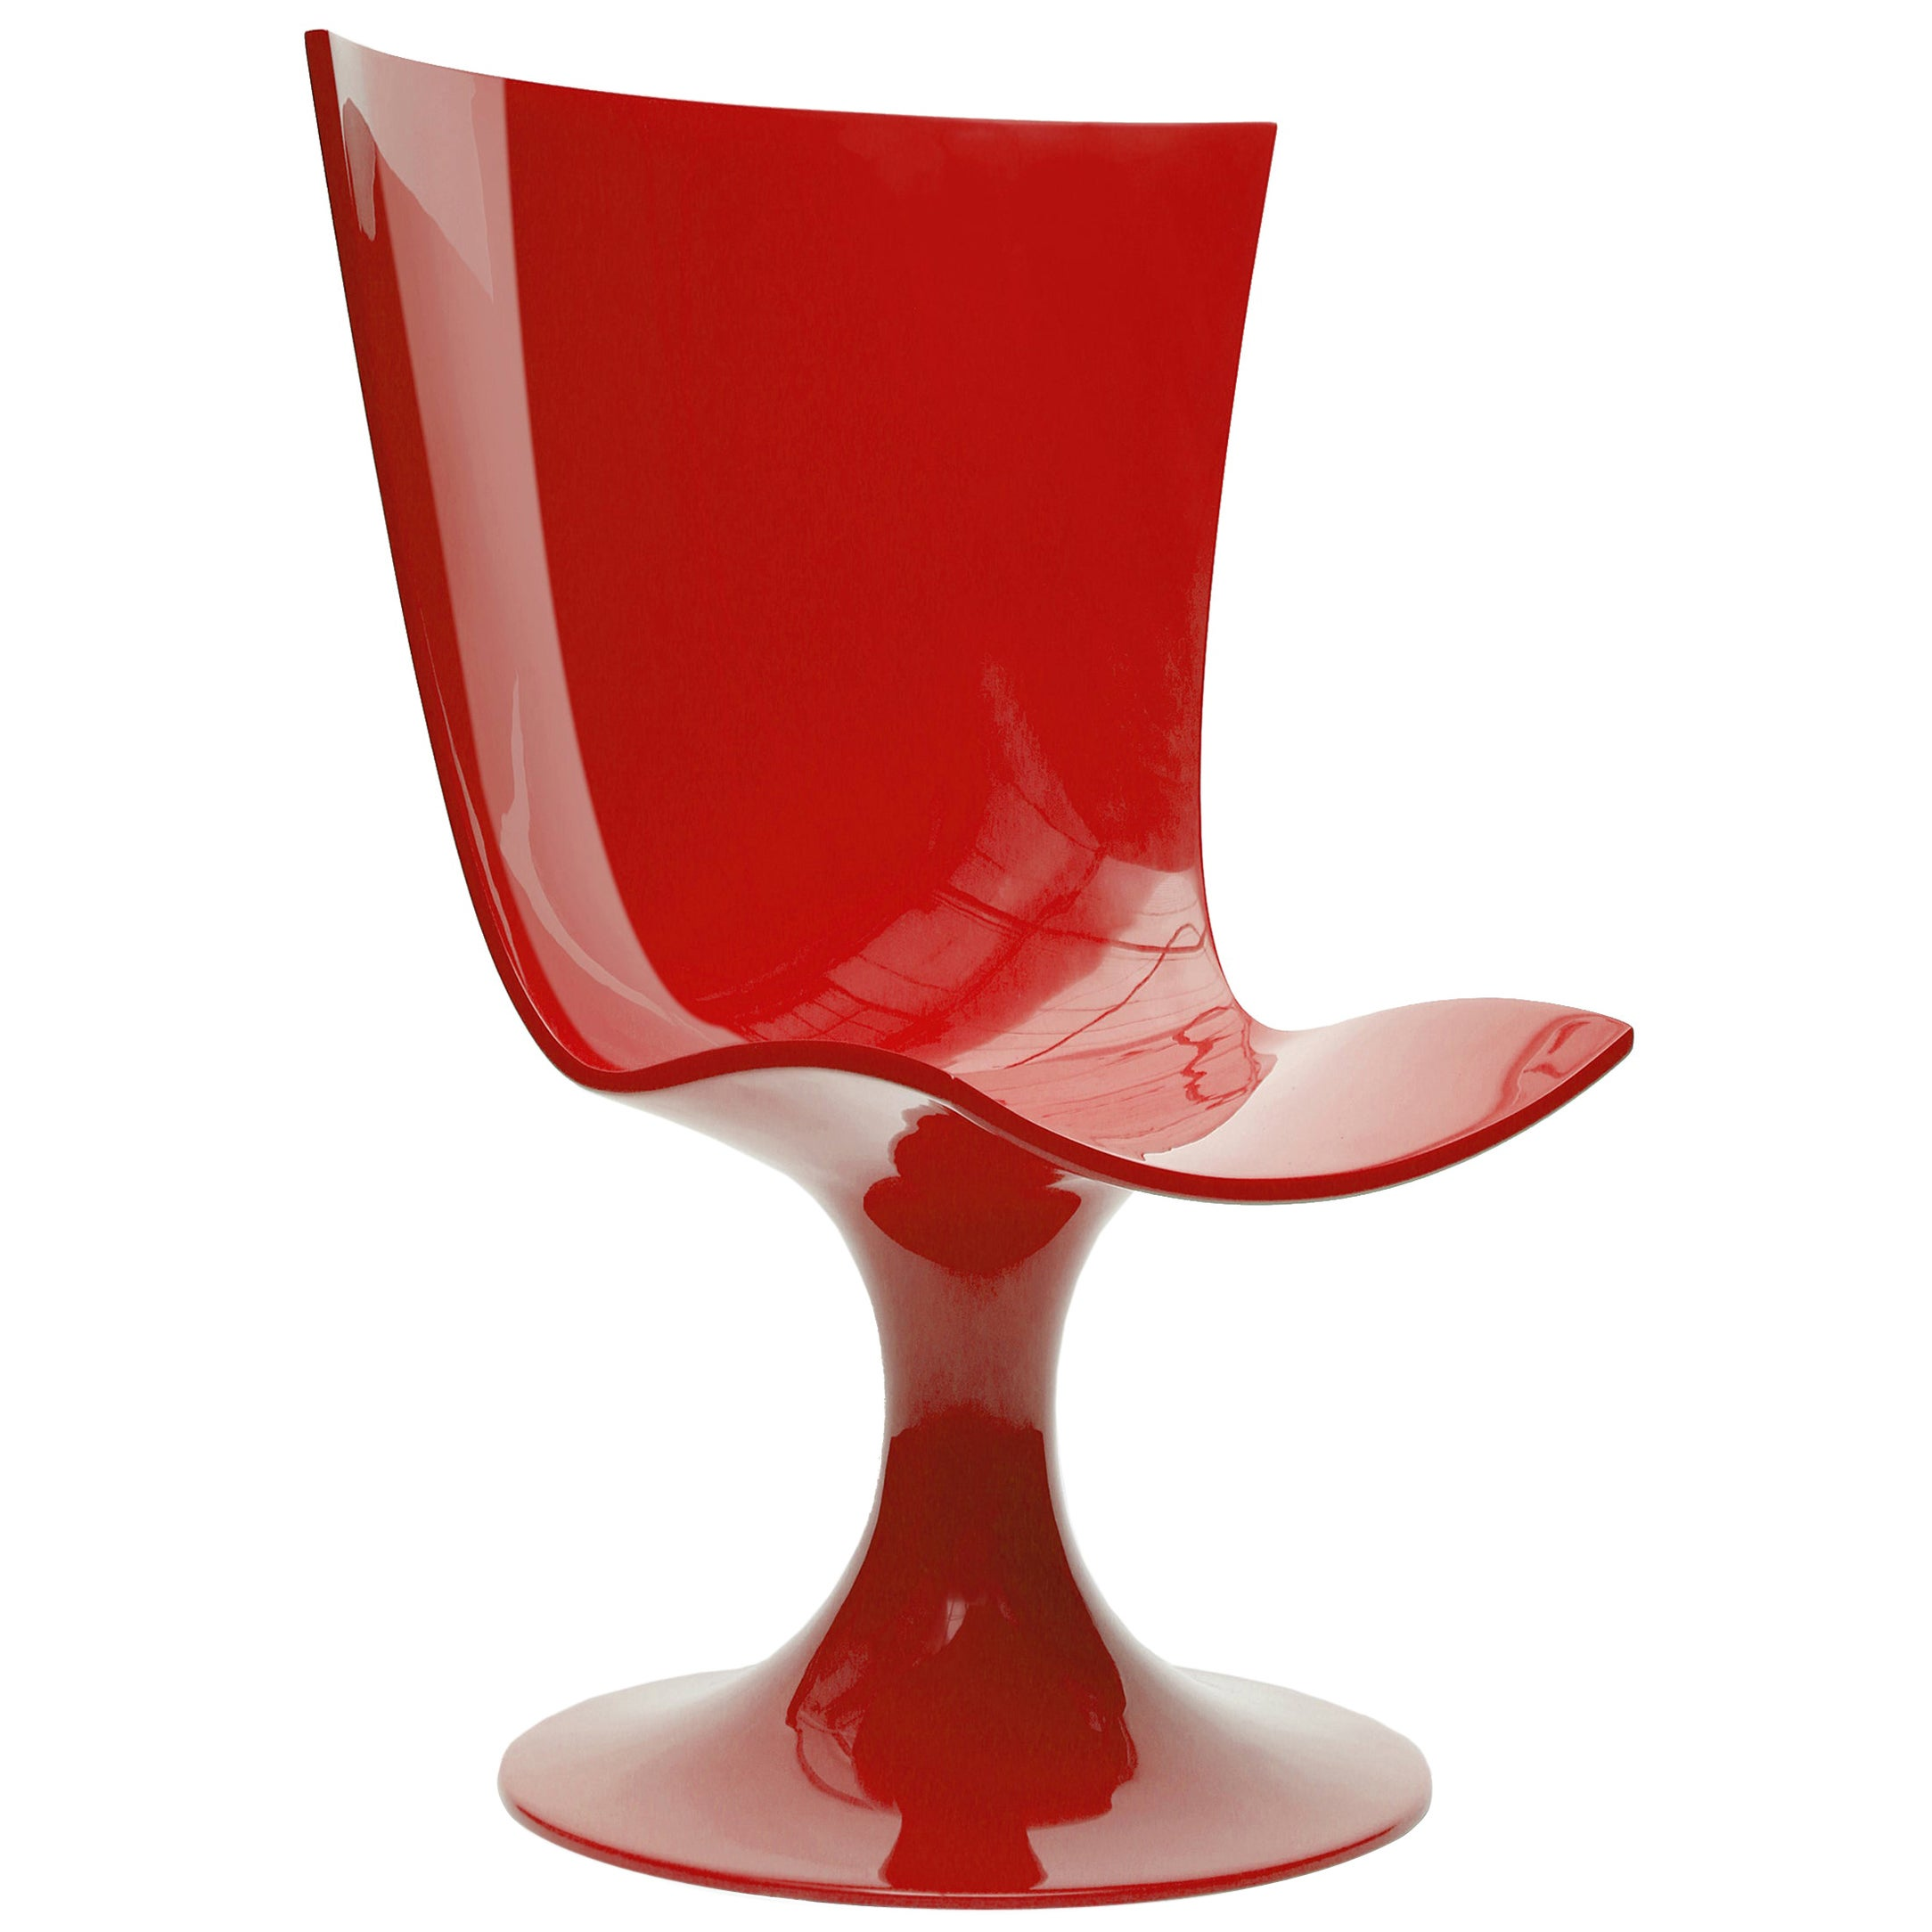 Imposing Red Seat, Decorative and Sculptural Santos Chair by Joel Escalona